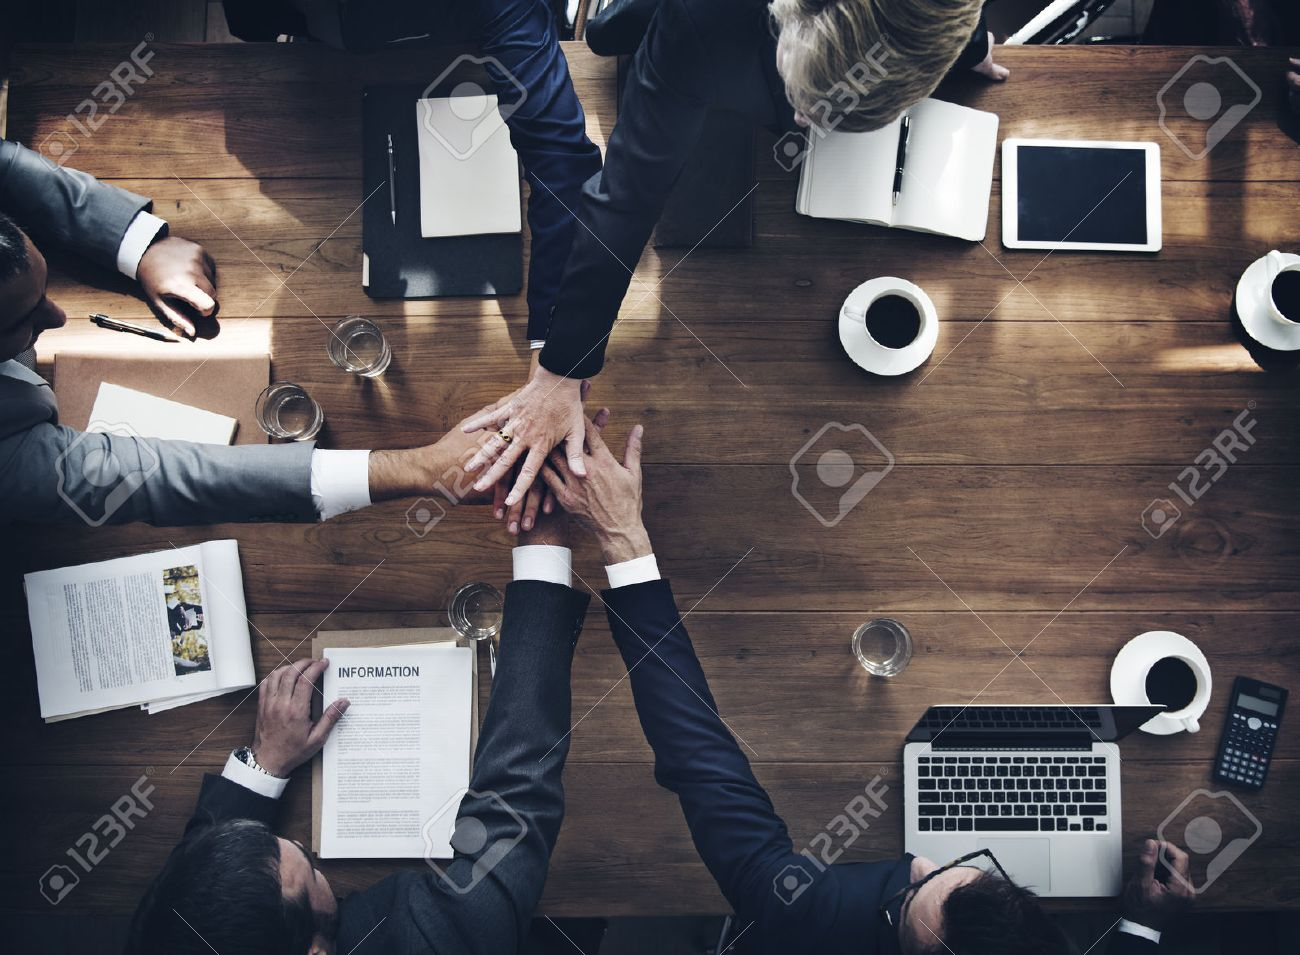 Business People Teamwork Collaboration Relation Concept - 53071869